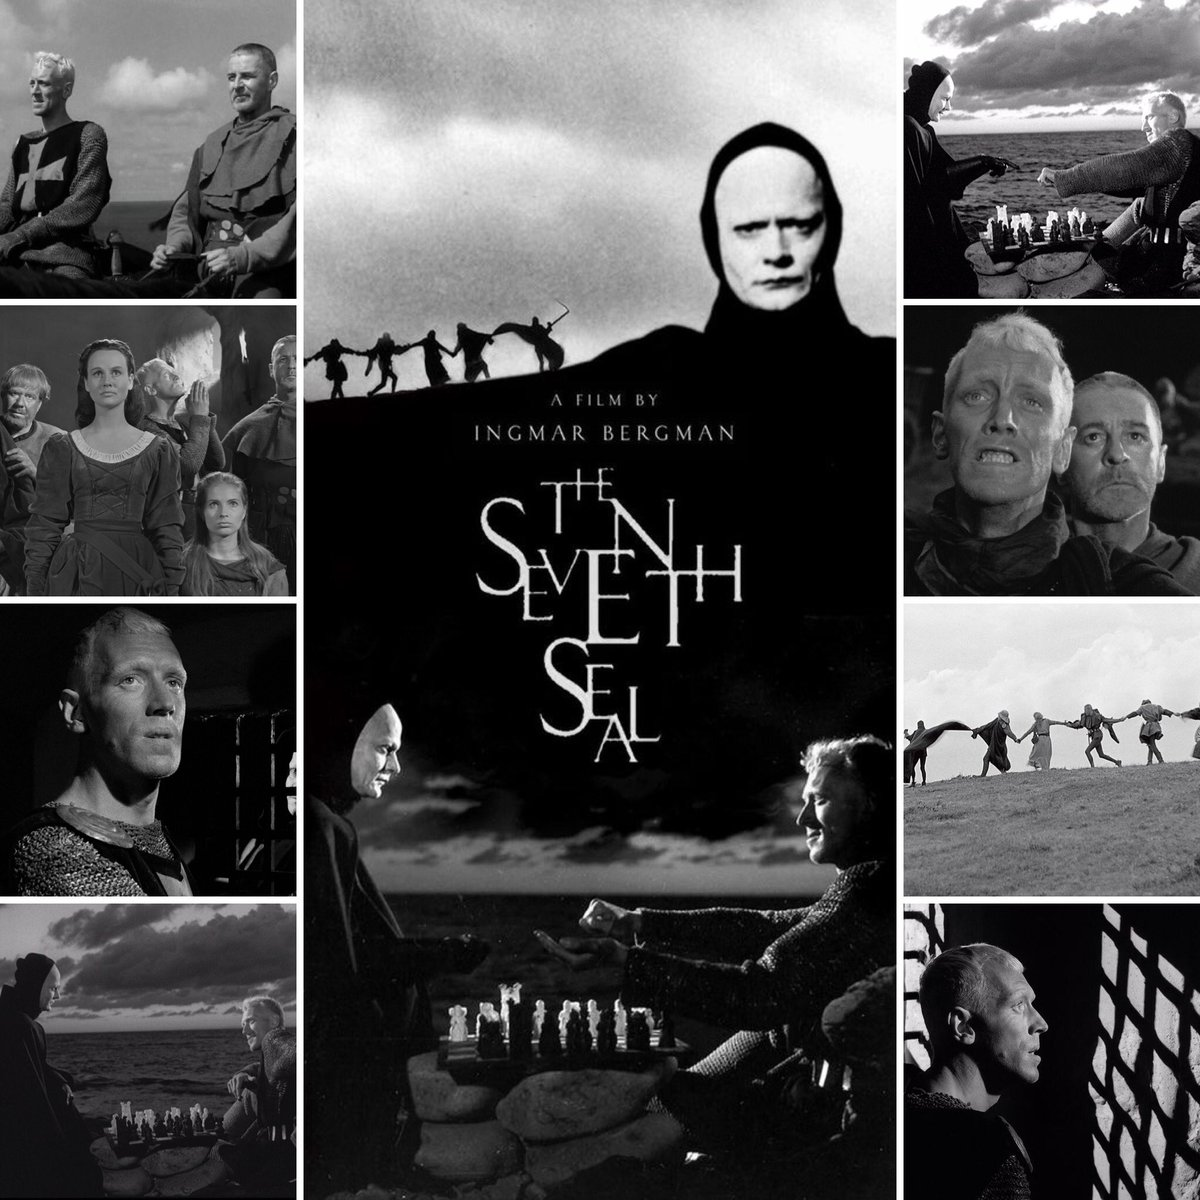 The Seventh Seal is filled with intelligent dialogue of both kinds, realistic and allegorical. The film talks about faith, religion, death, love and existence of God. Bergman makes Death a walking, talking character which provides for some very interesting conversations. #moviespic.twitter.com/VqC6zA2qWr